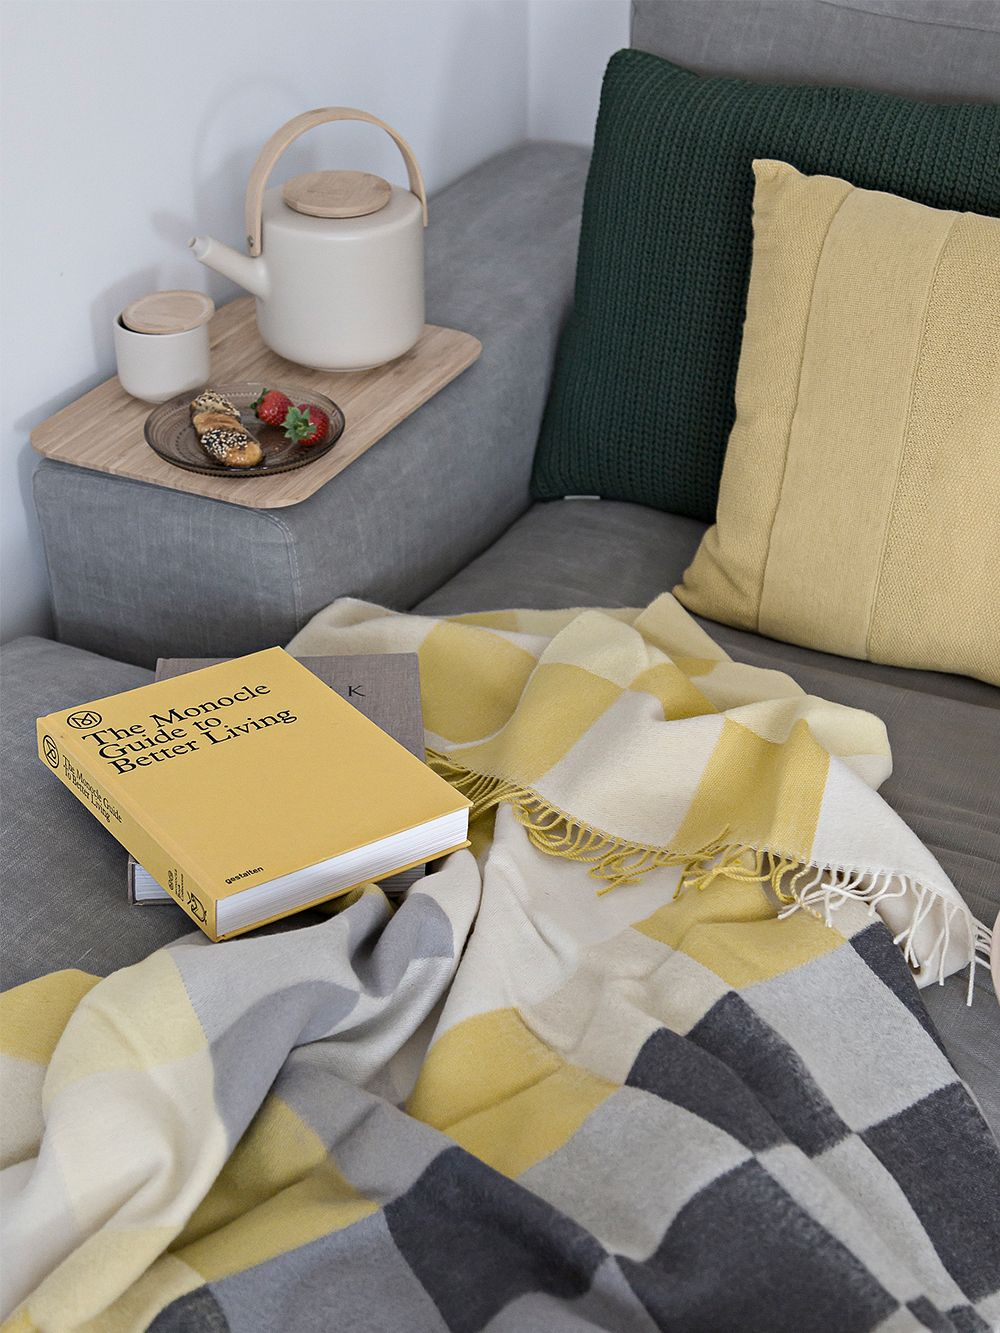 Silkeborg Uldspinderie's All Yellow throw on a sofa.